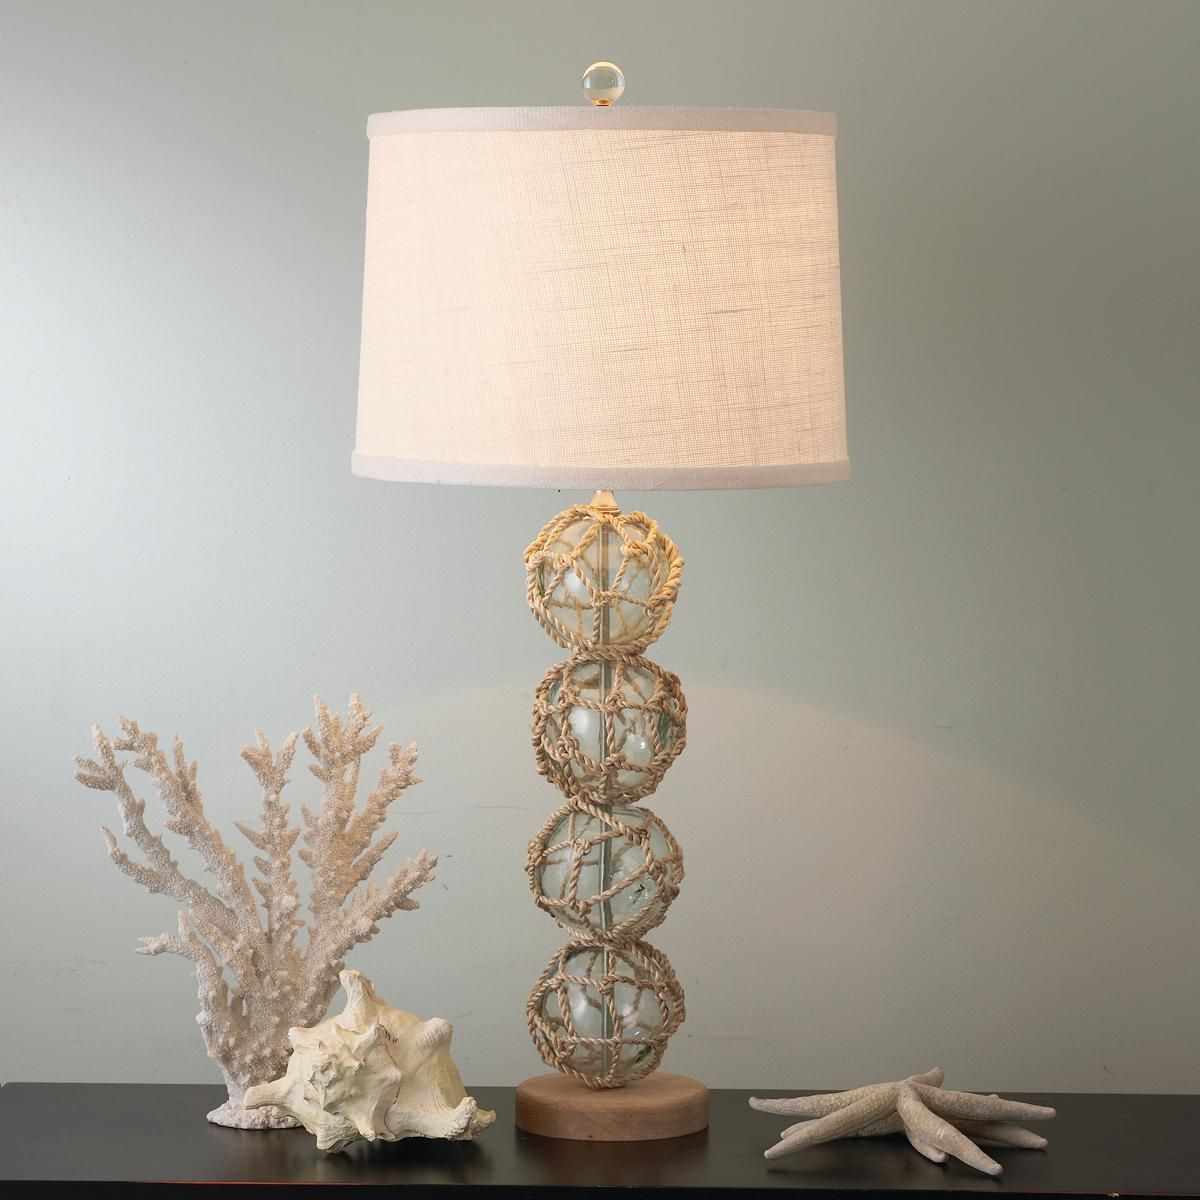 Nautical Rope And Glass Ball Table Lamp For The Home